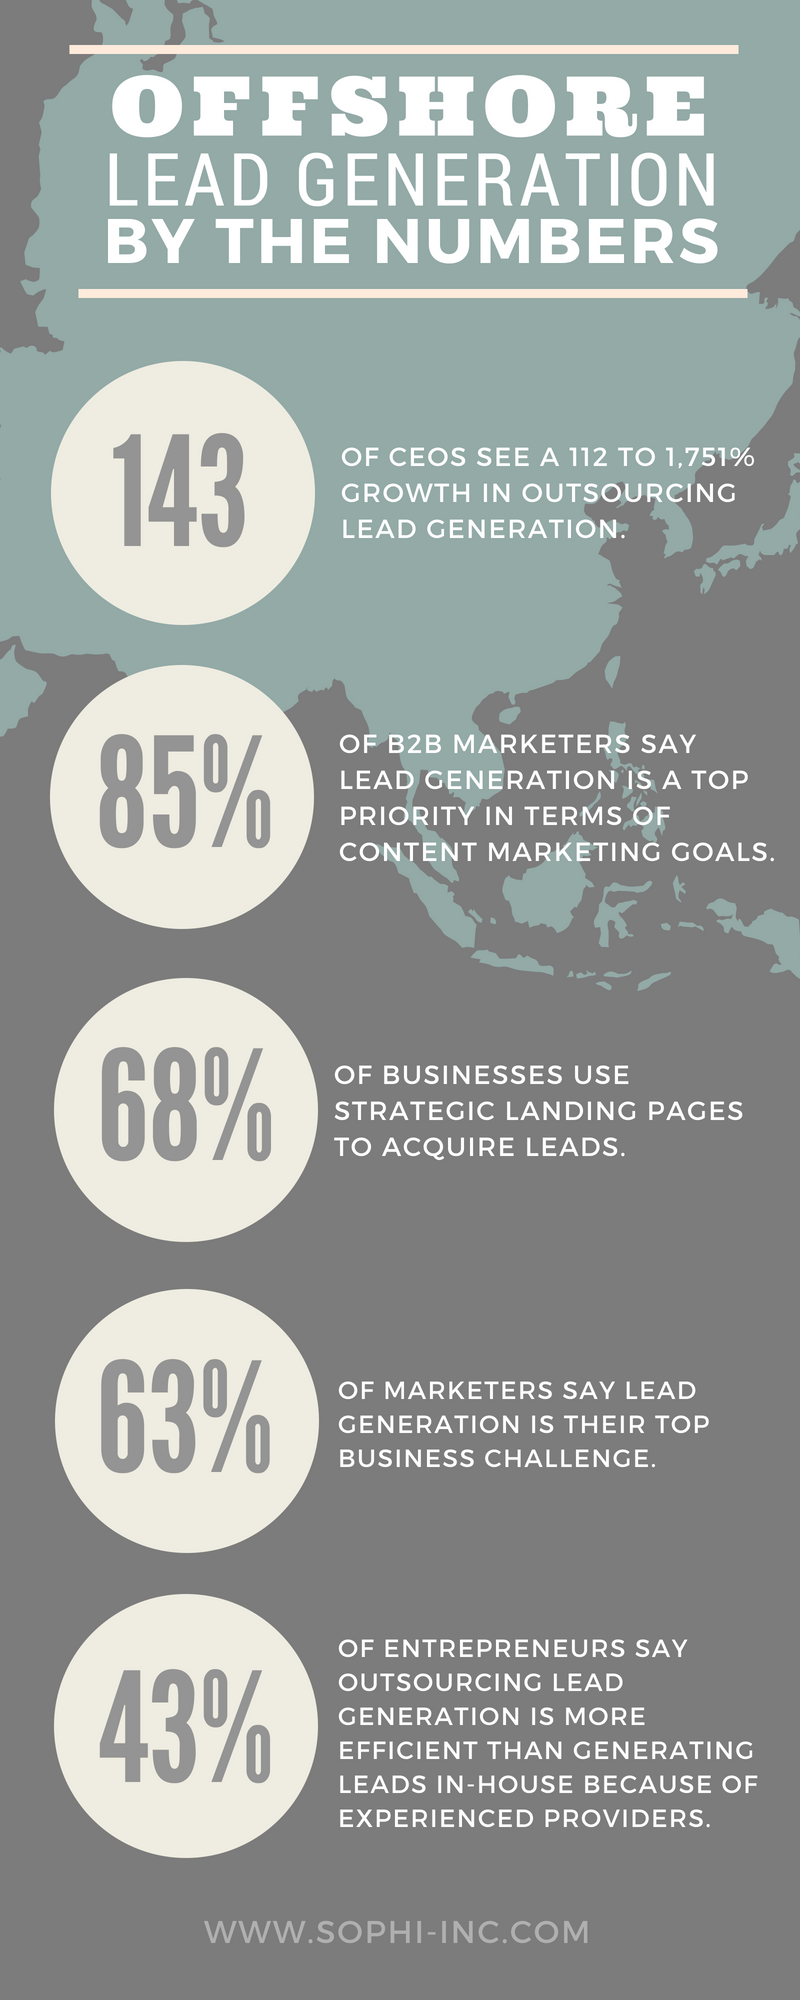 04 Offshore Lead Generation by the Numbers.png